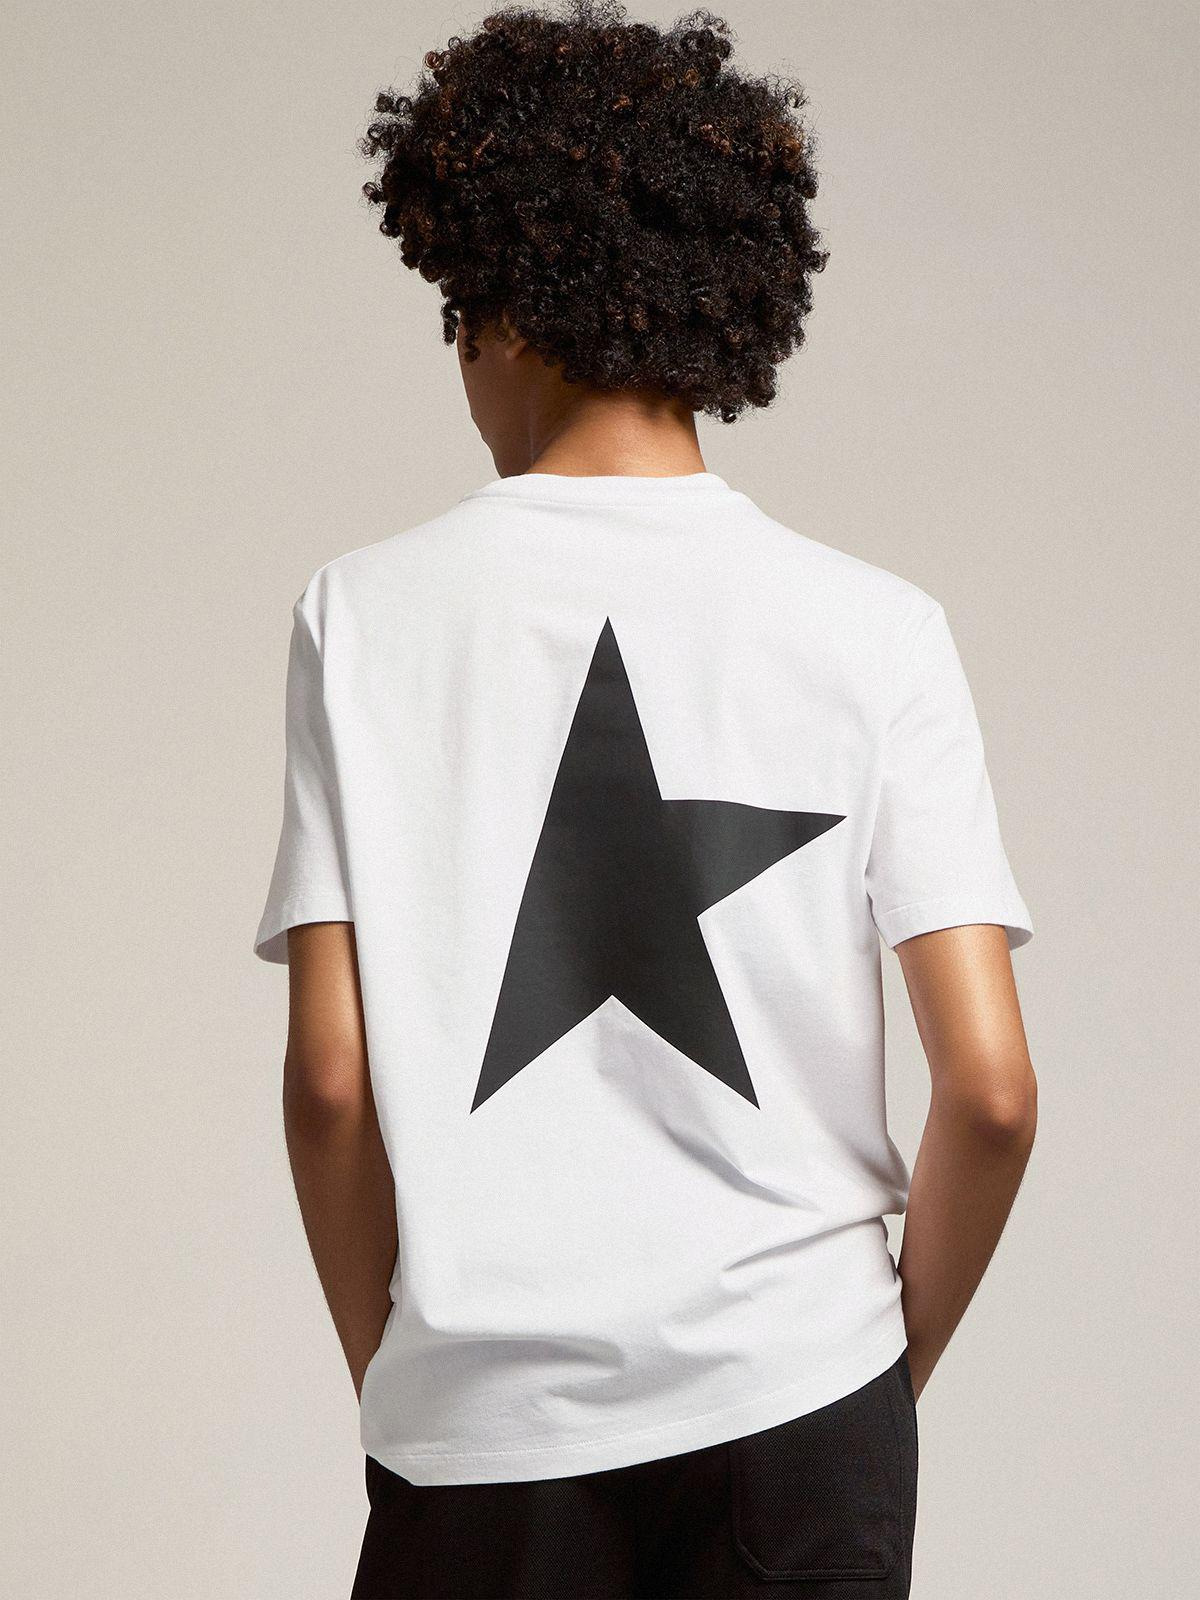 White Star Collection T-shirt with contrasting black logo and star 3